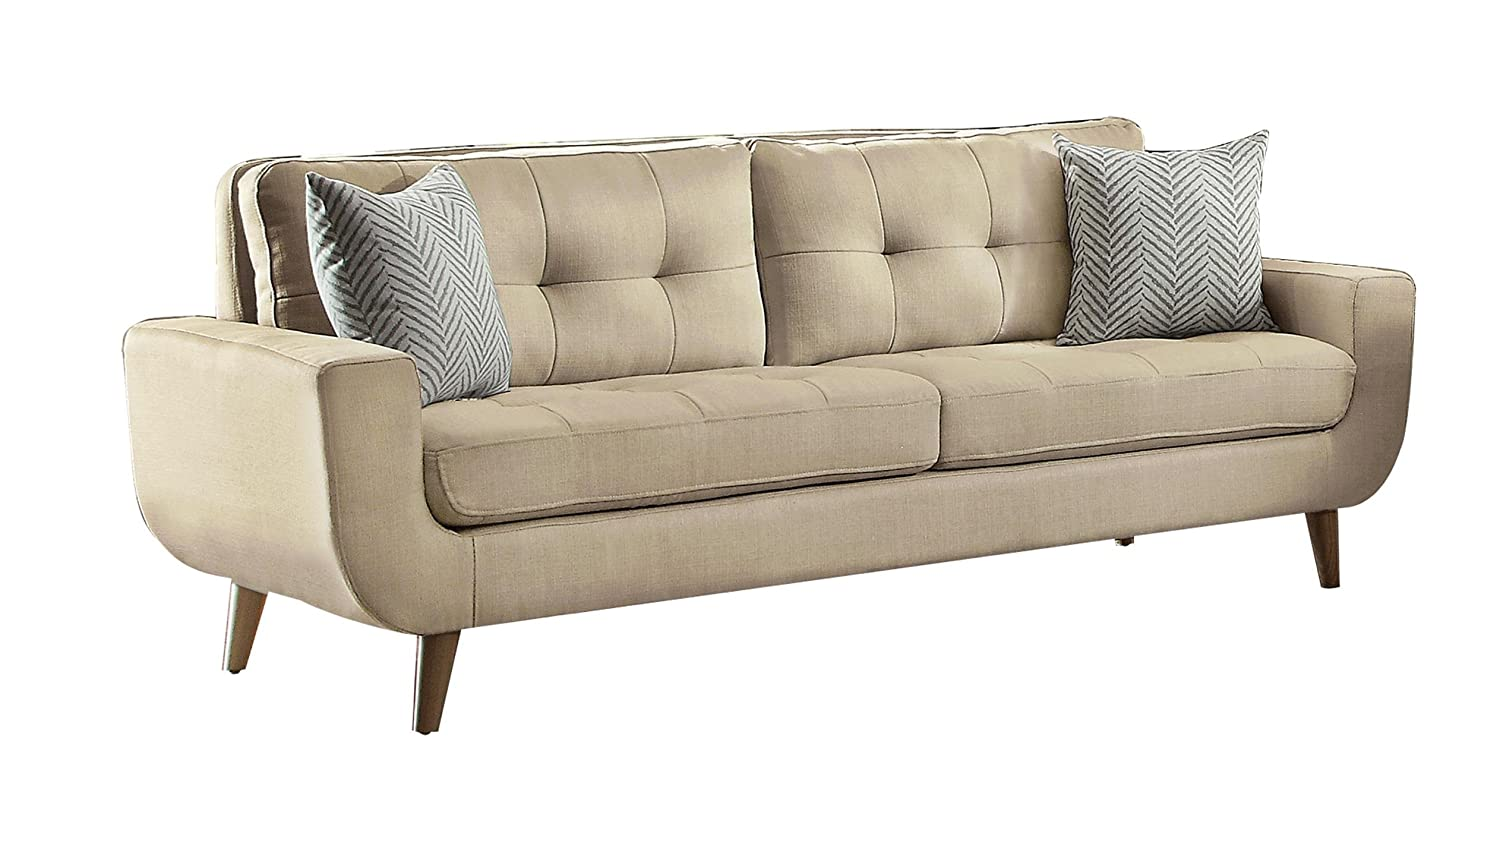 Homelegance Deryn Mid-Century Modern Sofa with Tufted Back and Two Herringbone Throw Pillows - Beige